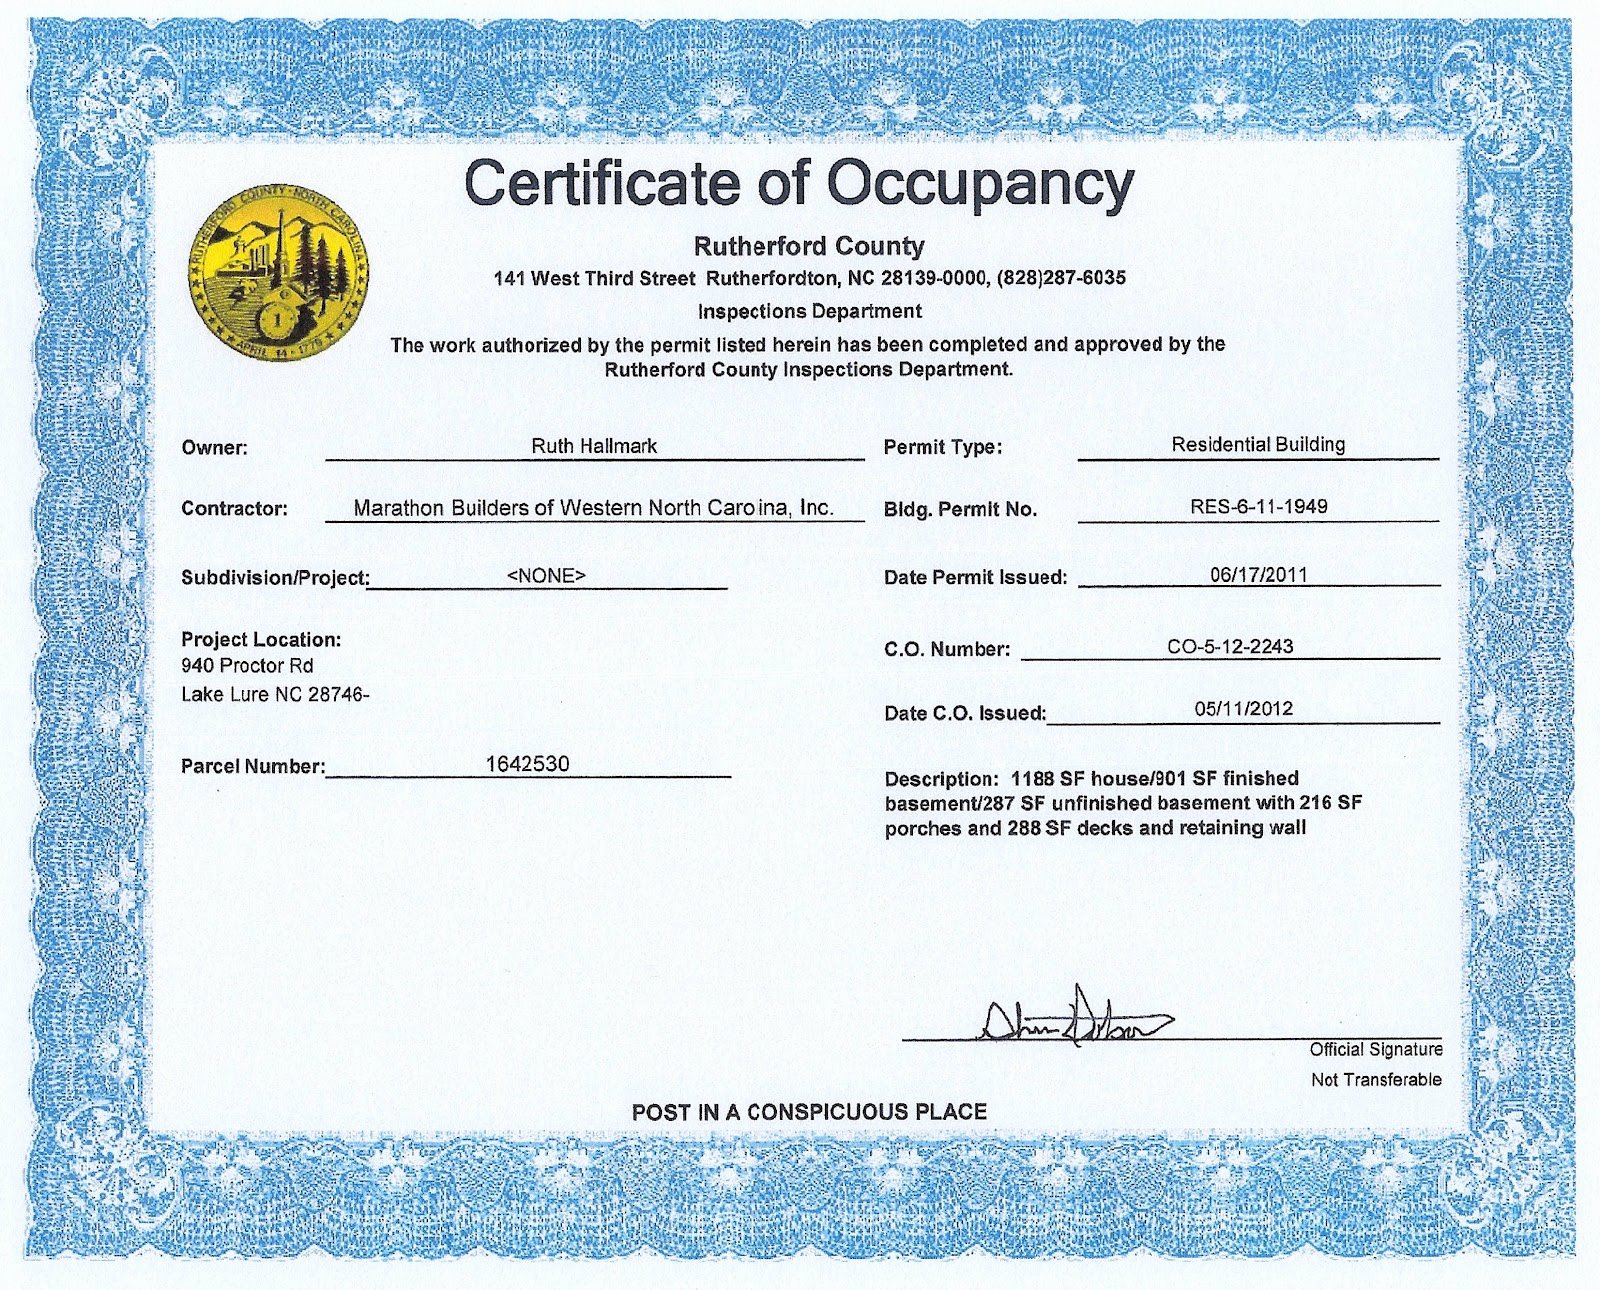 Certificate Of Occupancy Template Best Of the Hallmark Lodge at Lake Lure